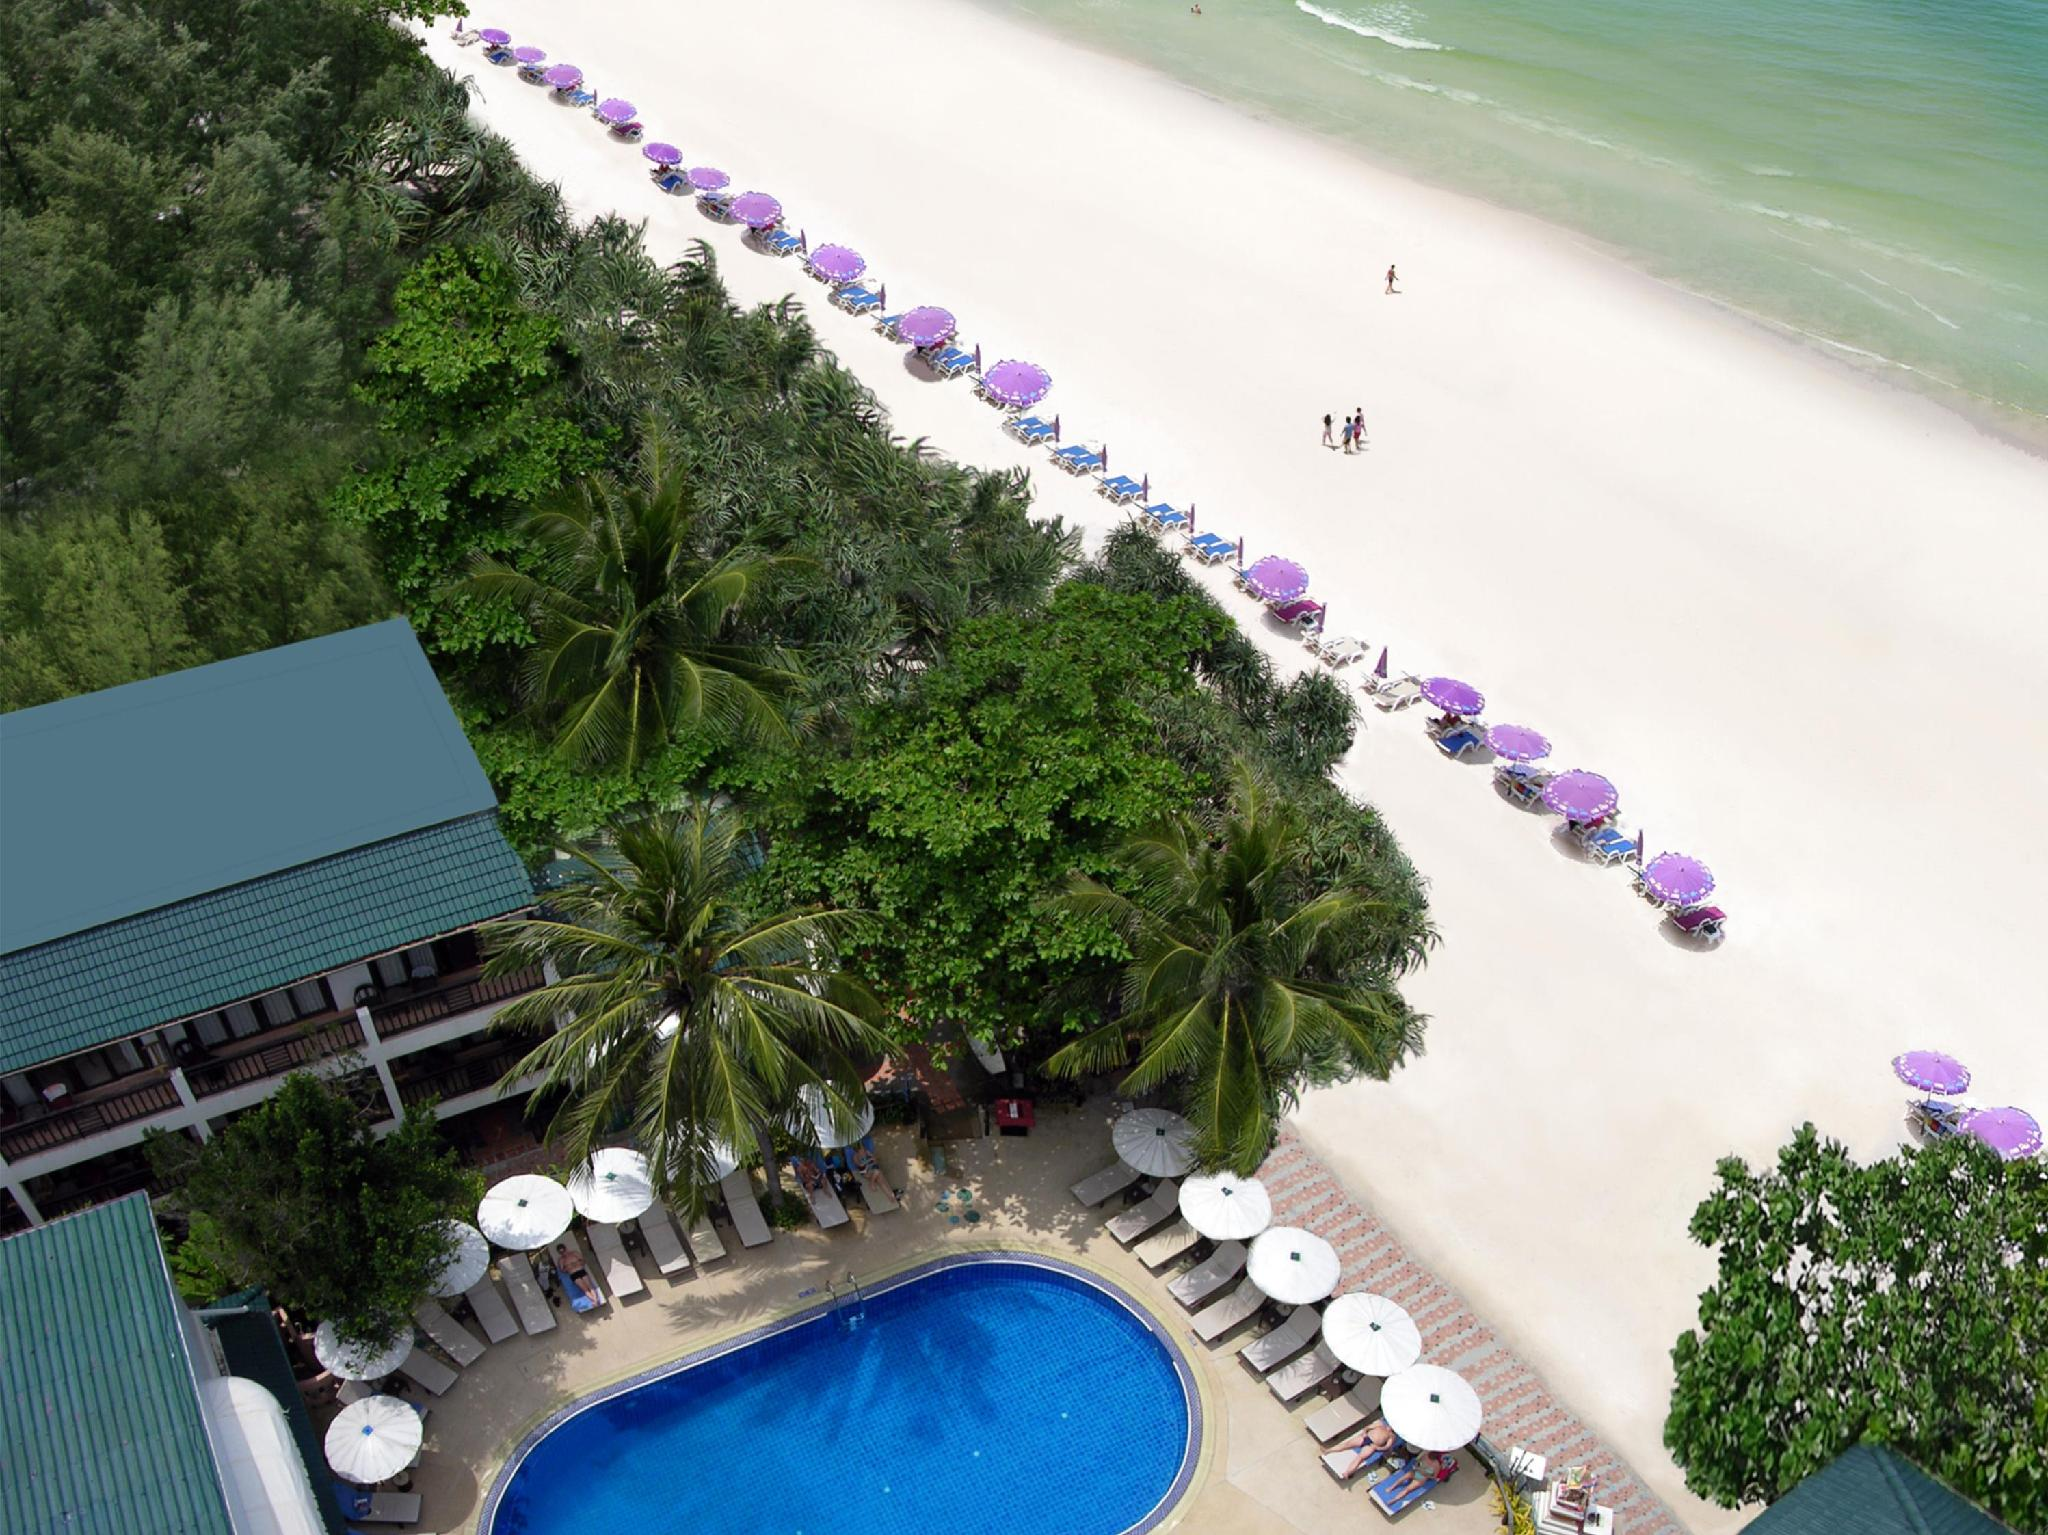 Thailand Hotels in Phuket (Page 72) - Thailand Travel Information